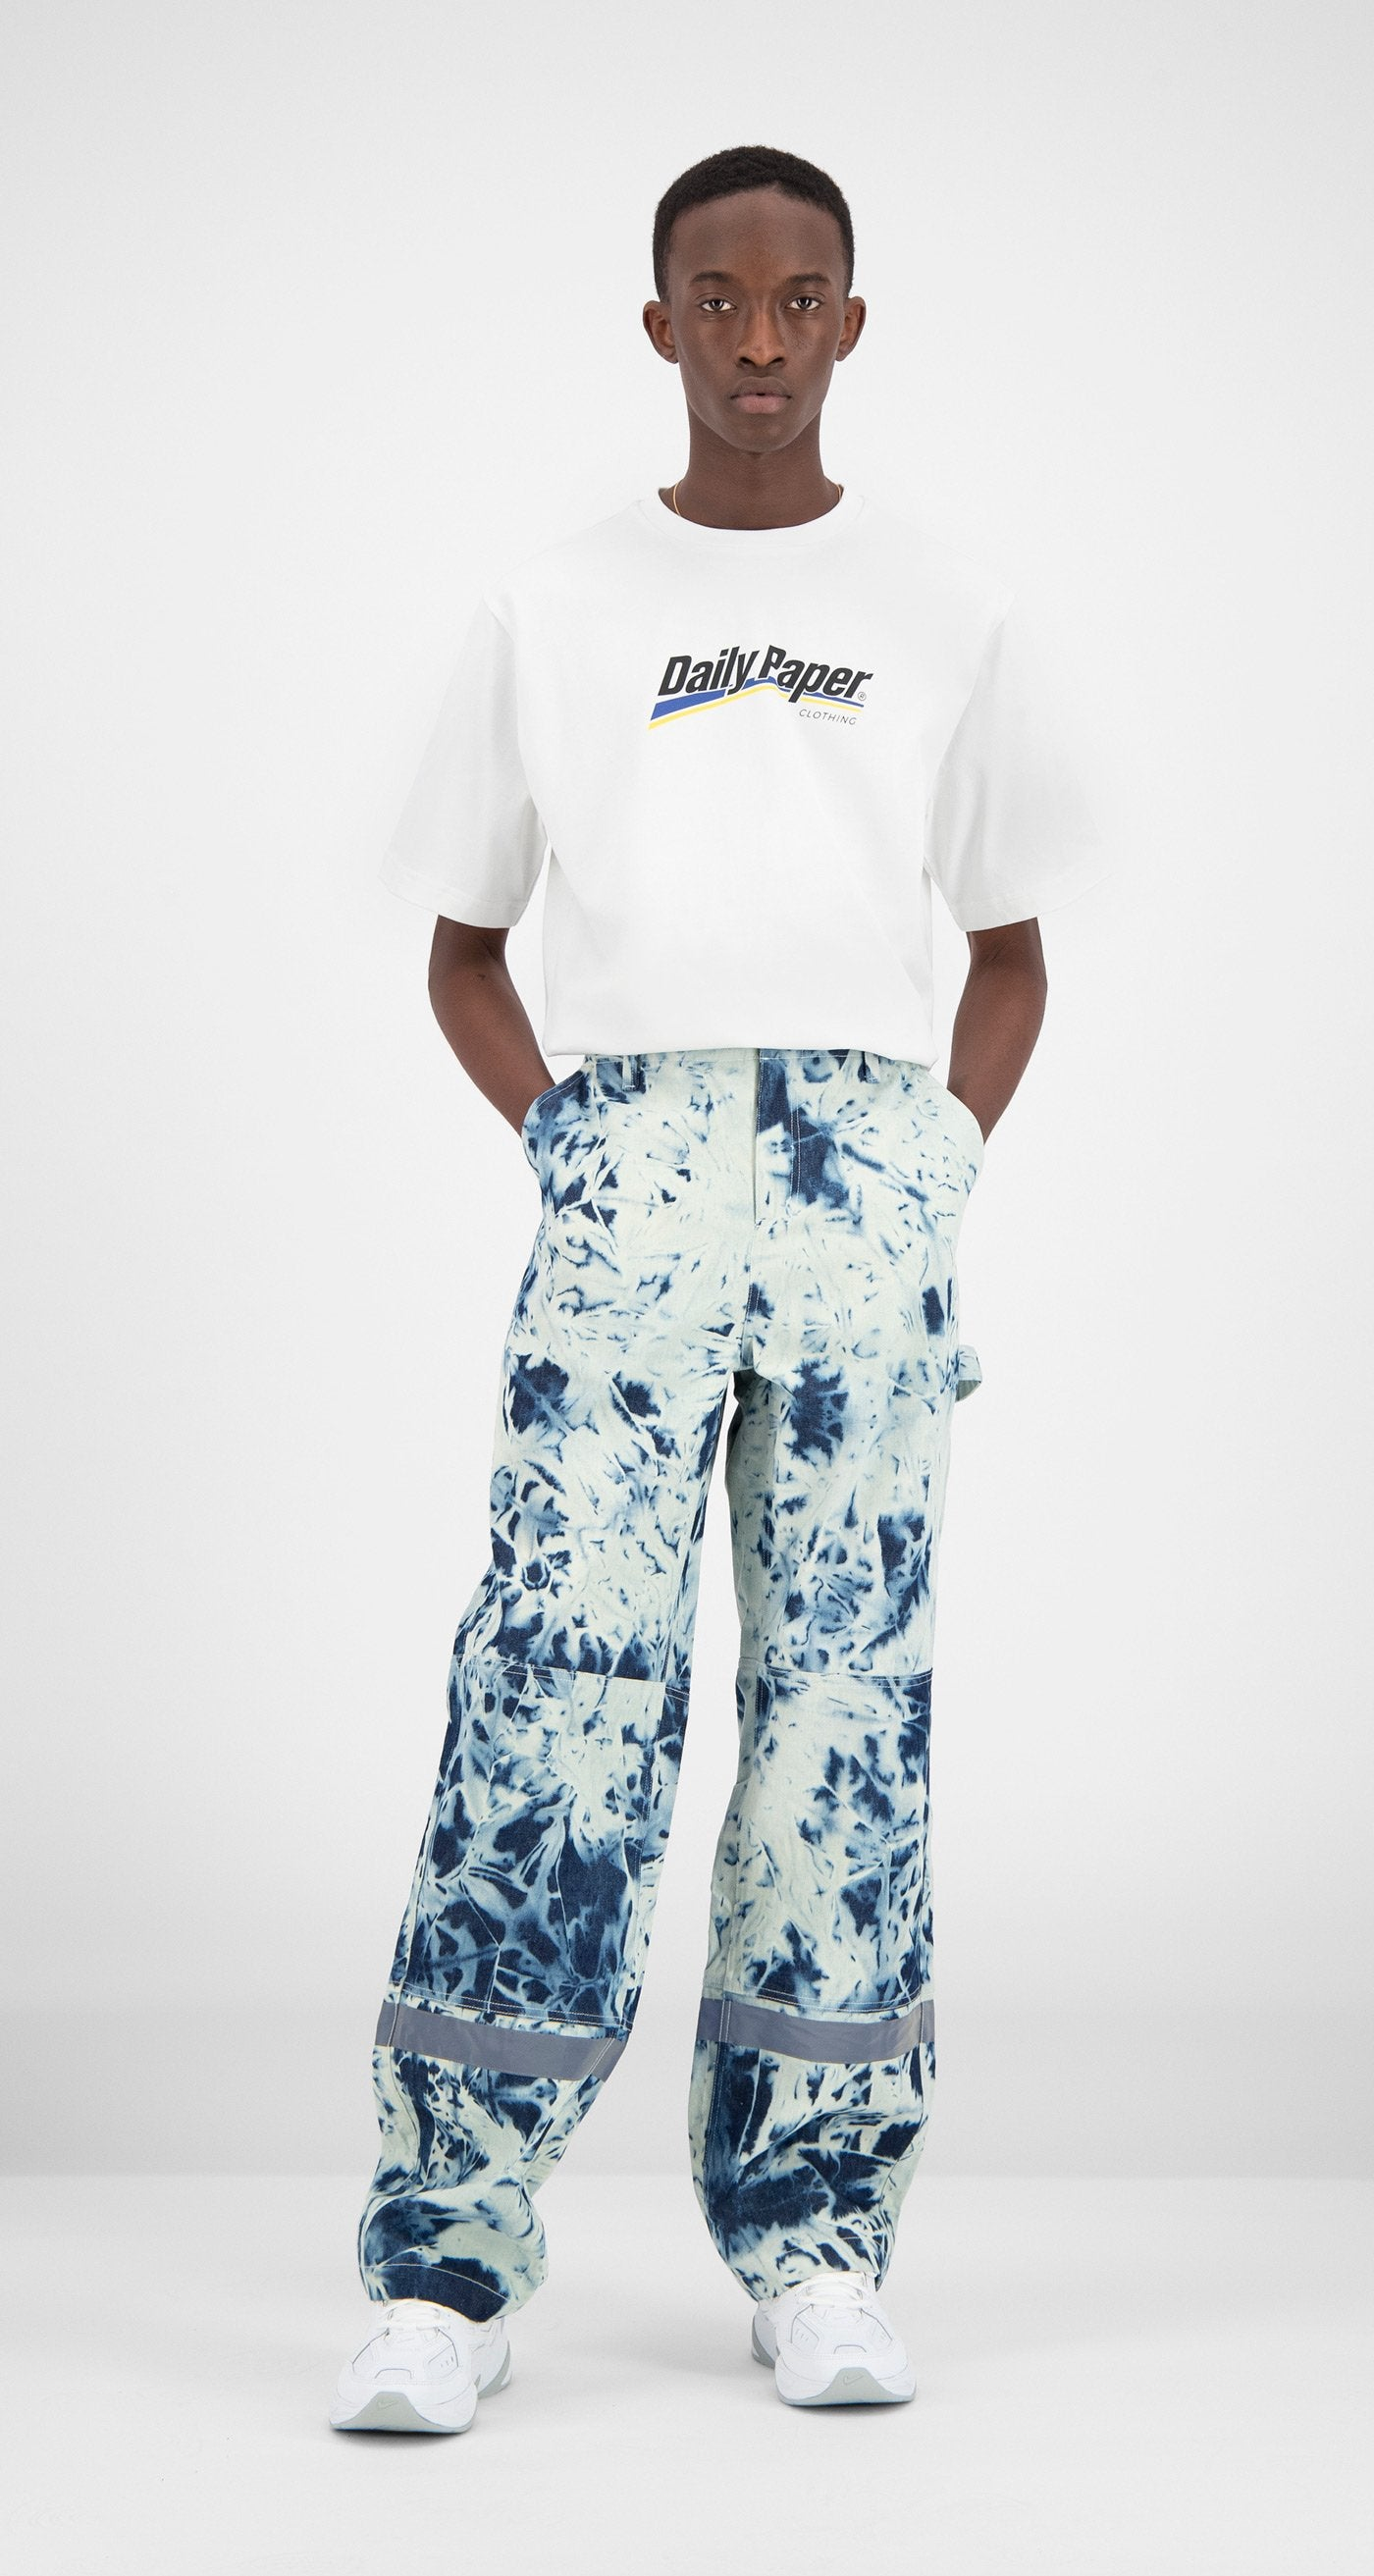 Daily Paper - Navy Printed Fefac Pants Men